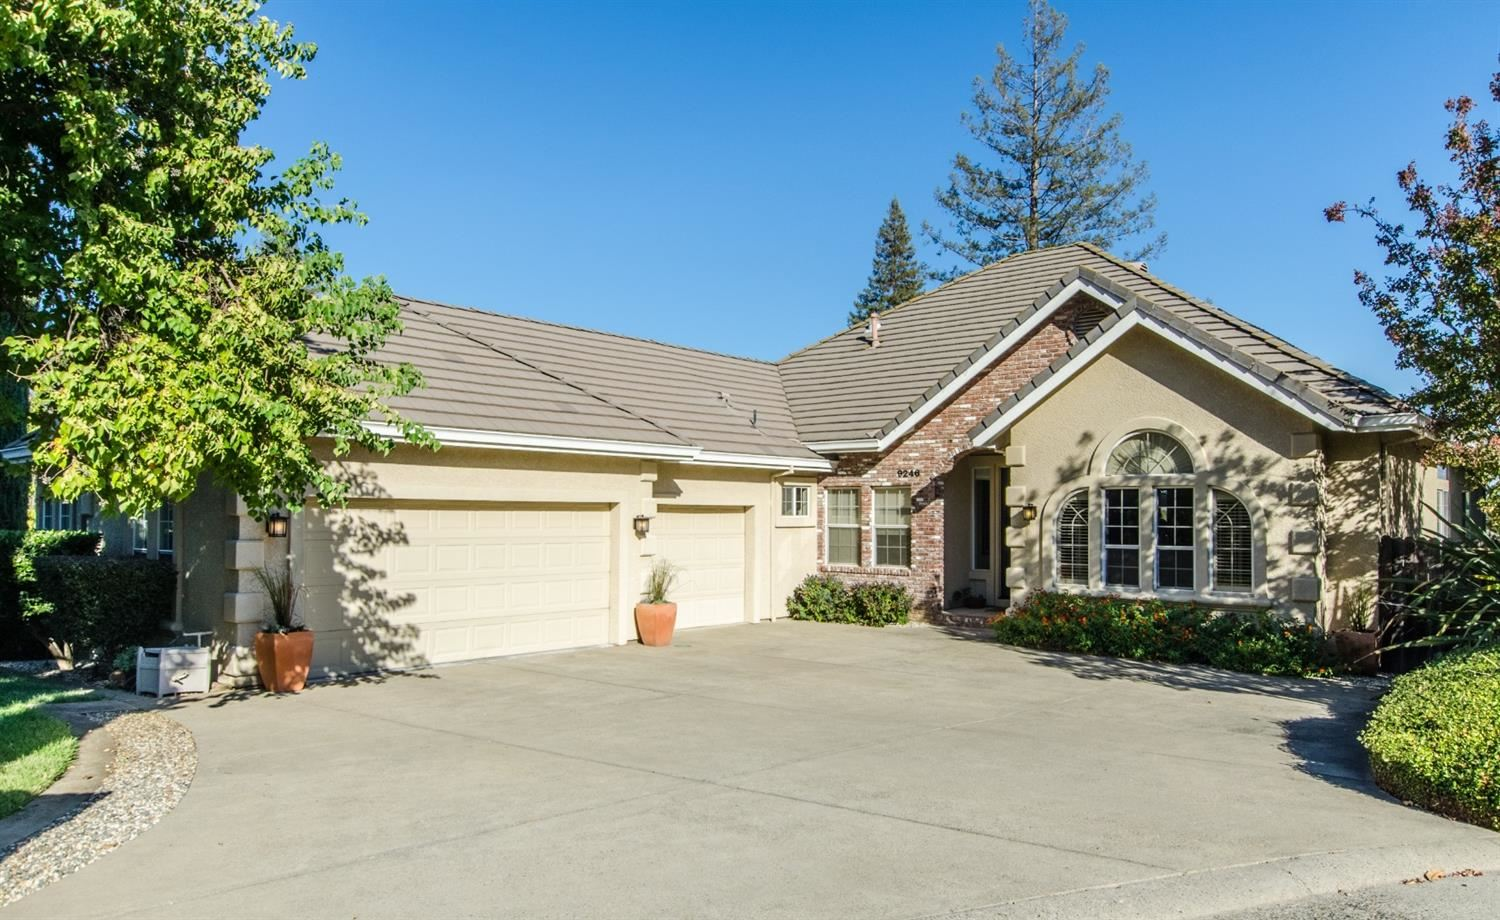 Photo of 9246 Outpost Court, Fair Oaks, CA 95628 (MLS # 20063240)